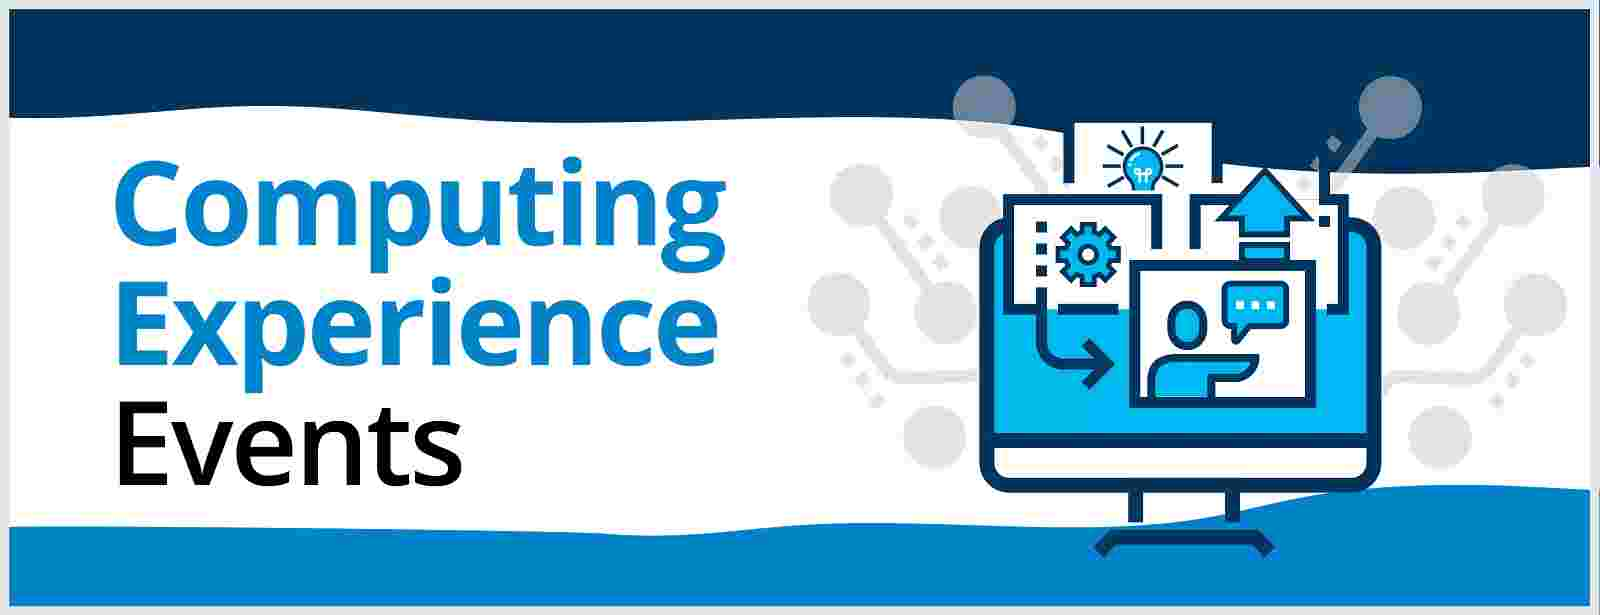 Computing Experience Events